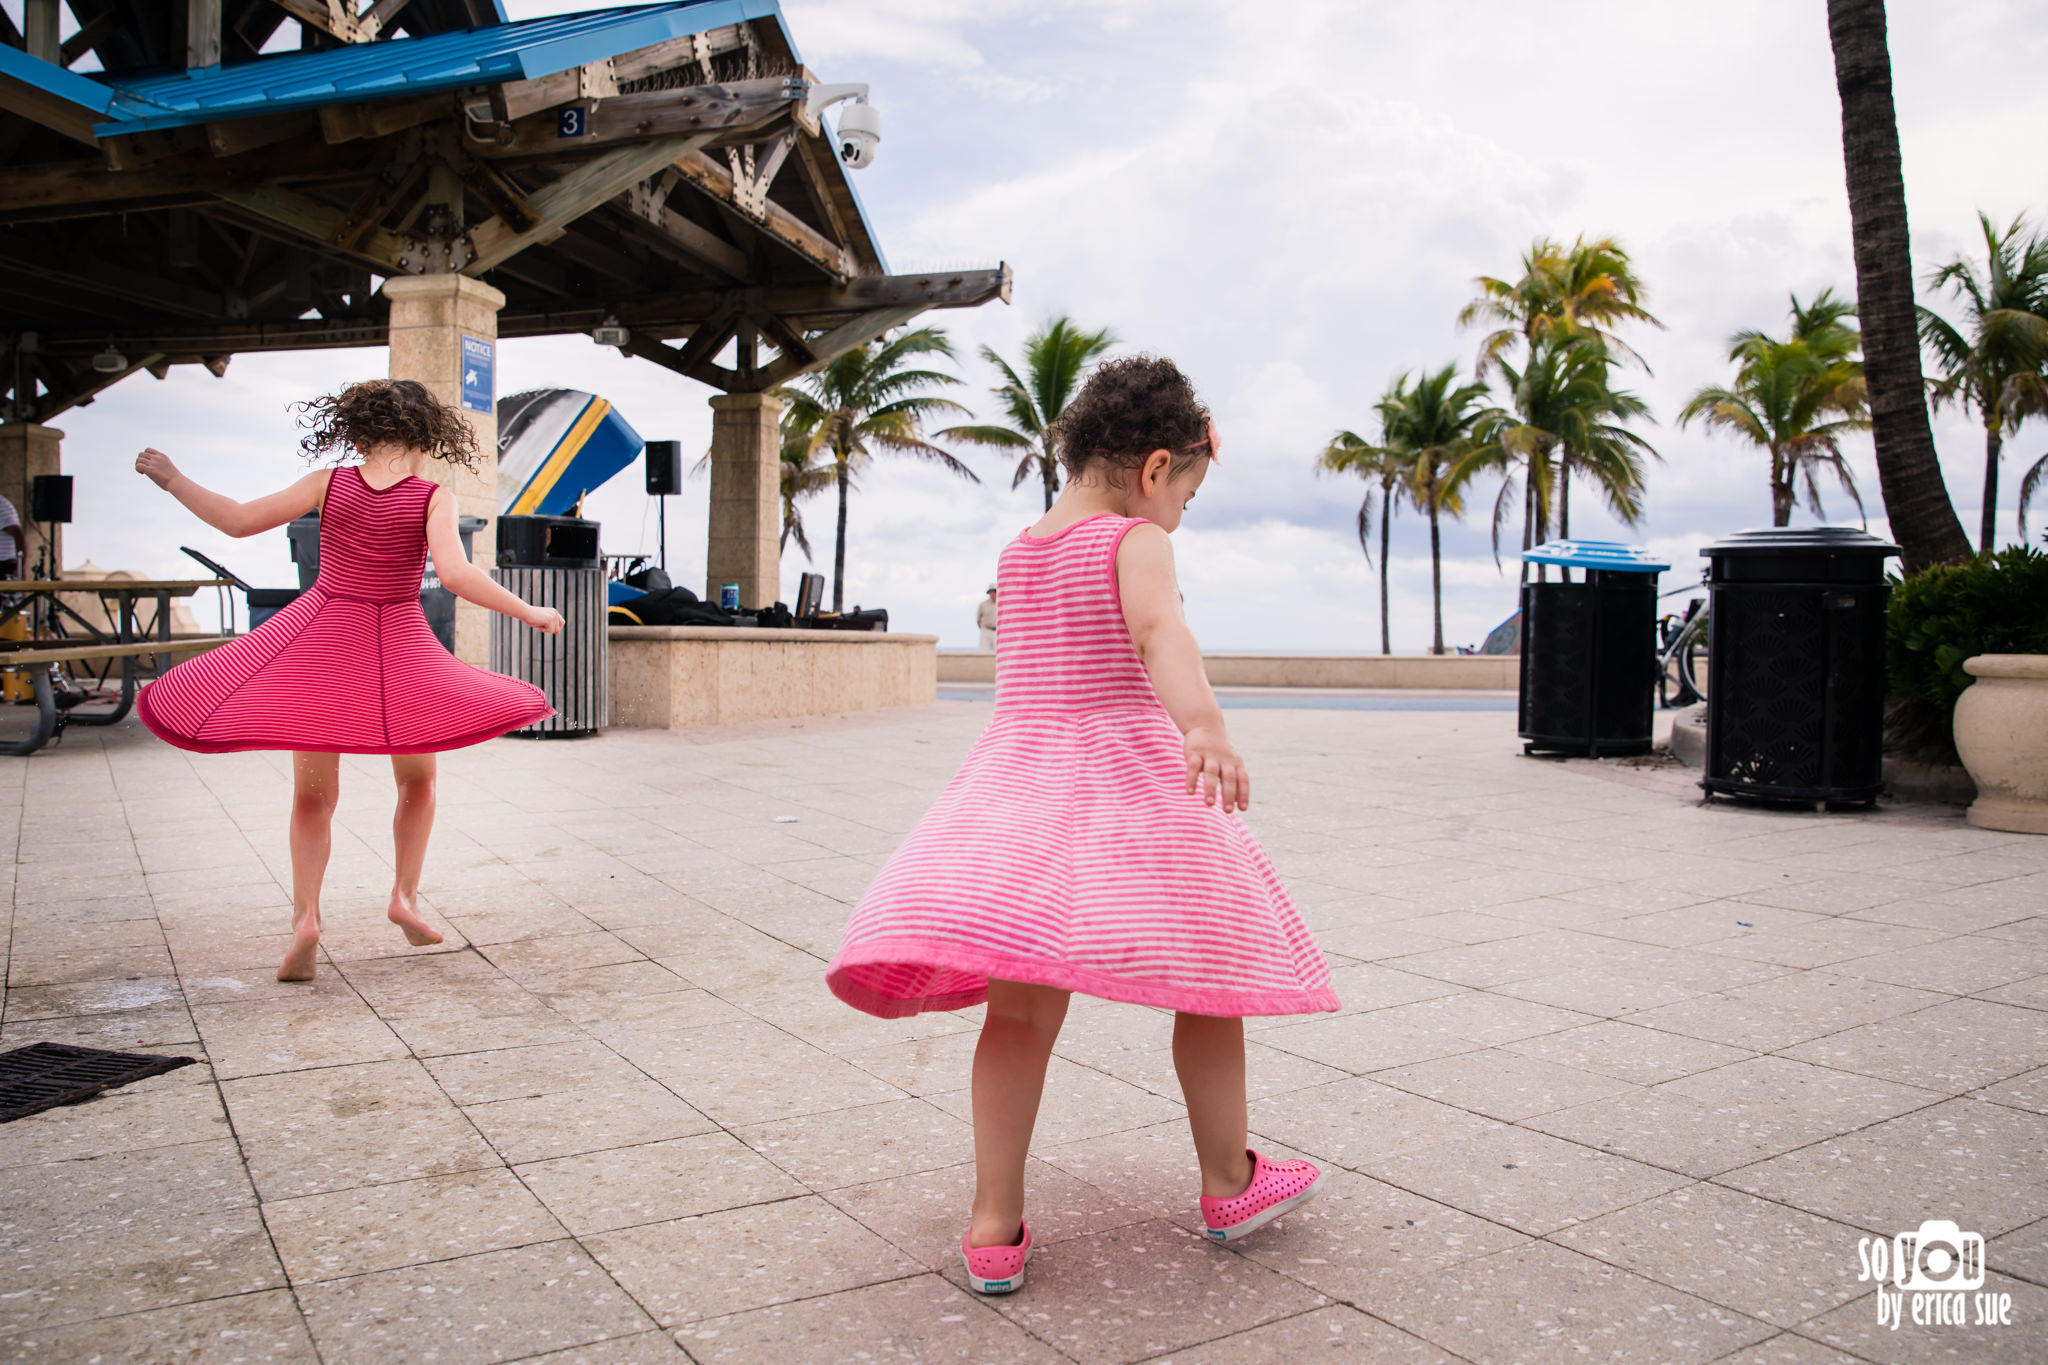 so-you-by-erica-sue-hollywood-beach-lifestyle-family-photographer-session-1852.JPG